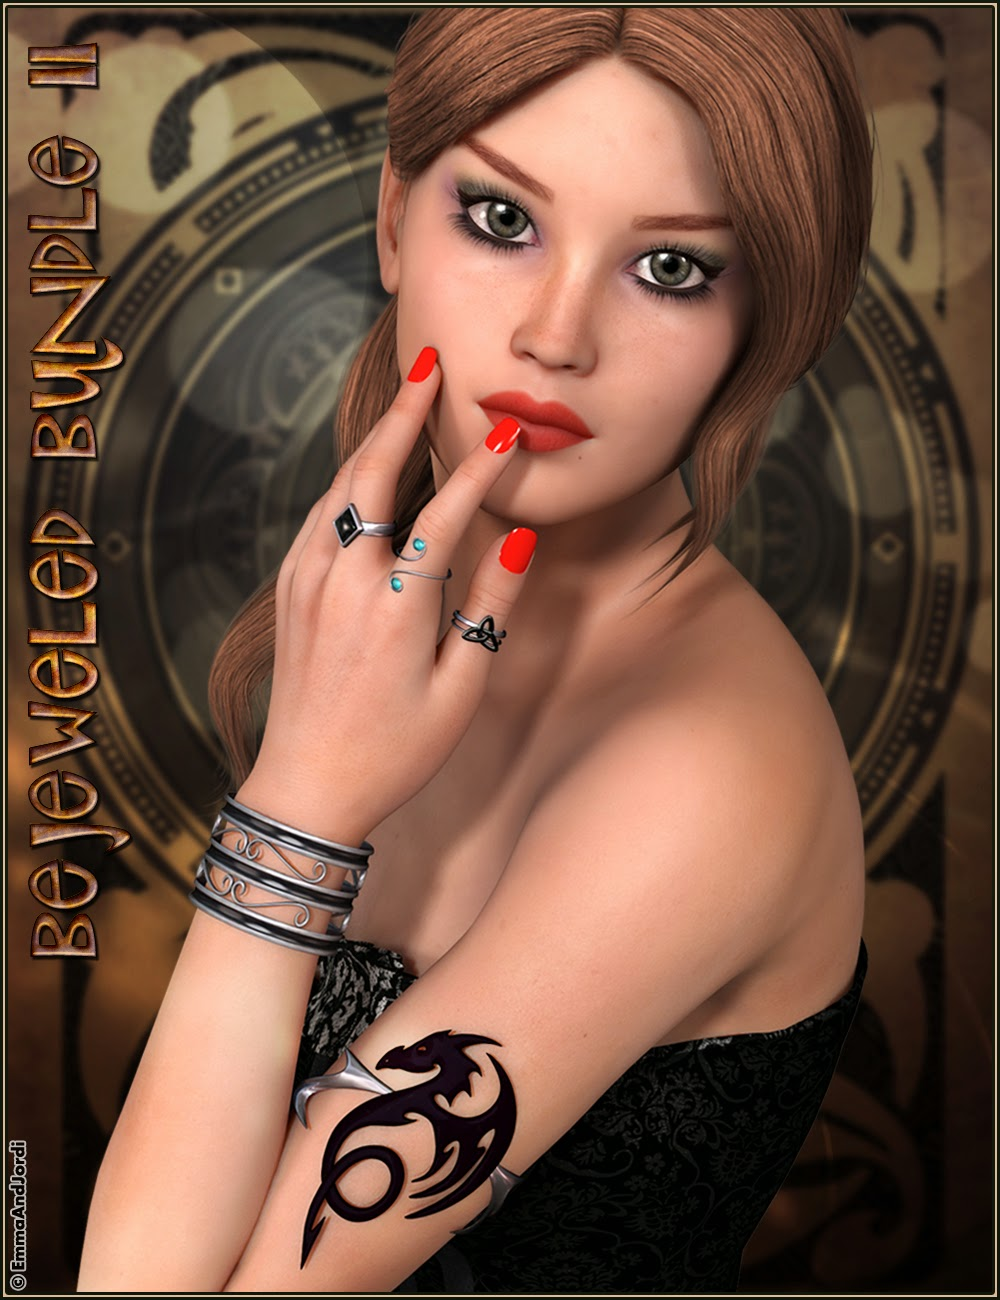 http://www.daz3d.com/bejeweled-bundle-2-arm-cuffs-bangles-rings-and-toe-rings